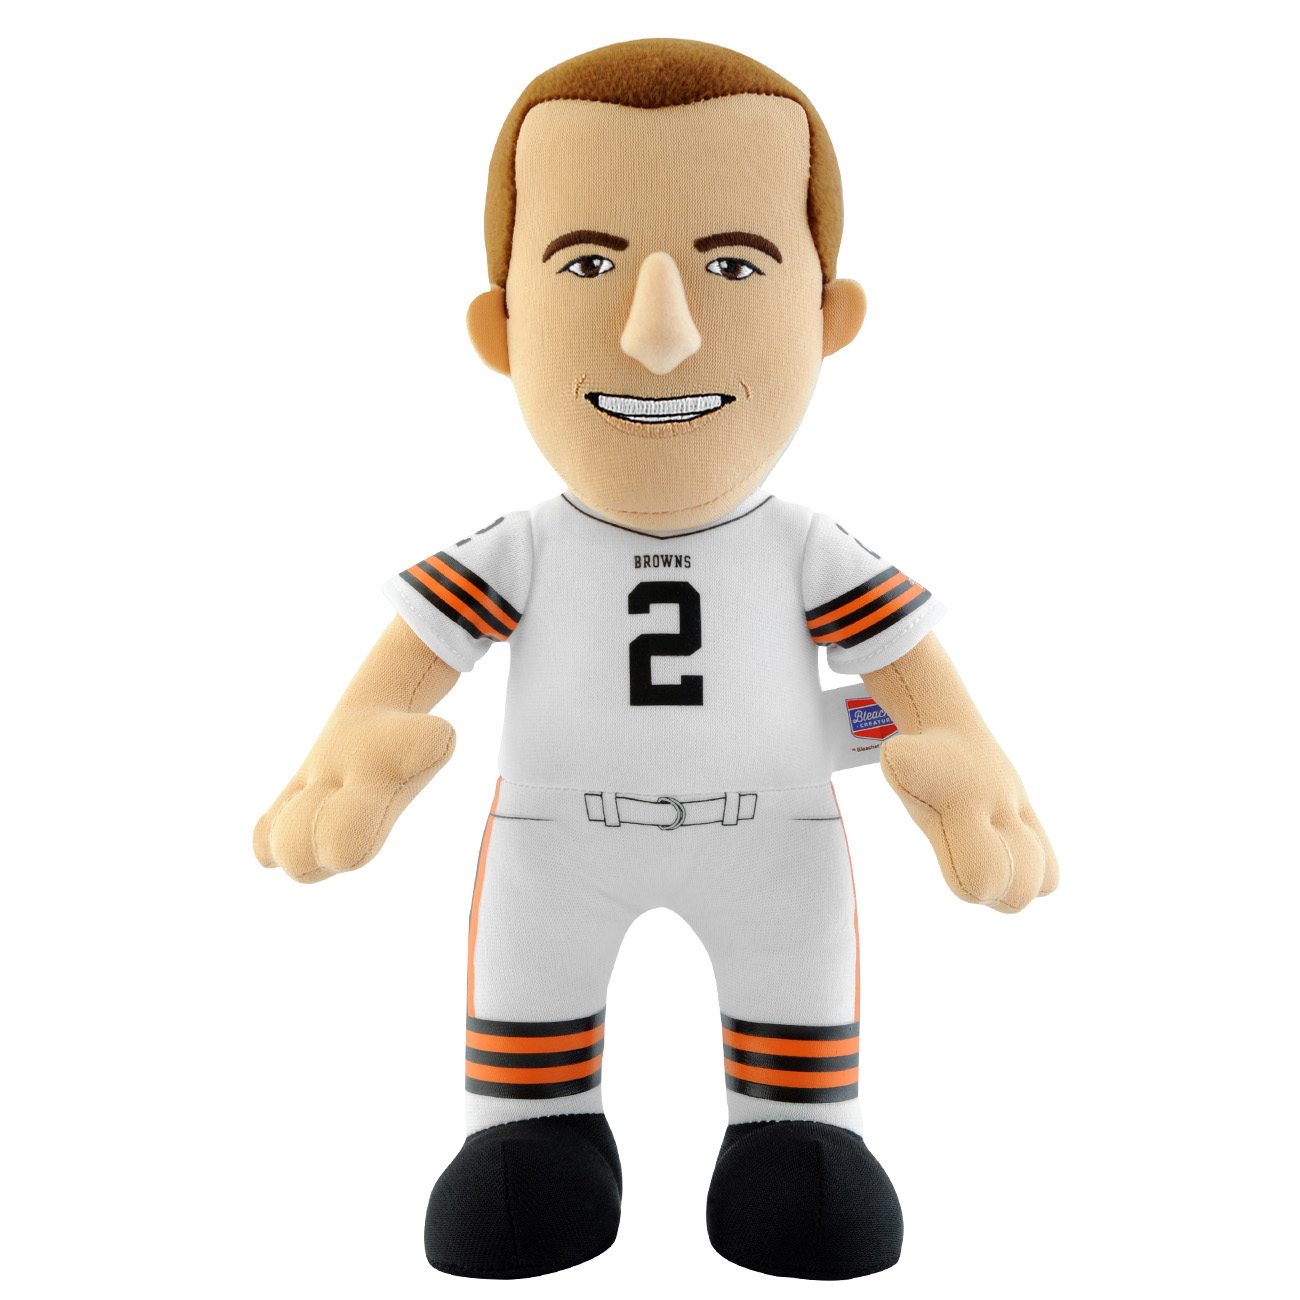 Cleveland Browns Bleacher Creature 10 inch Plush - Johnny Manziel